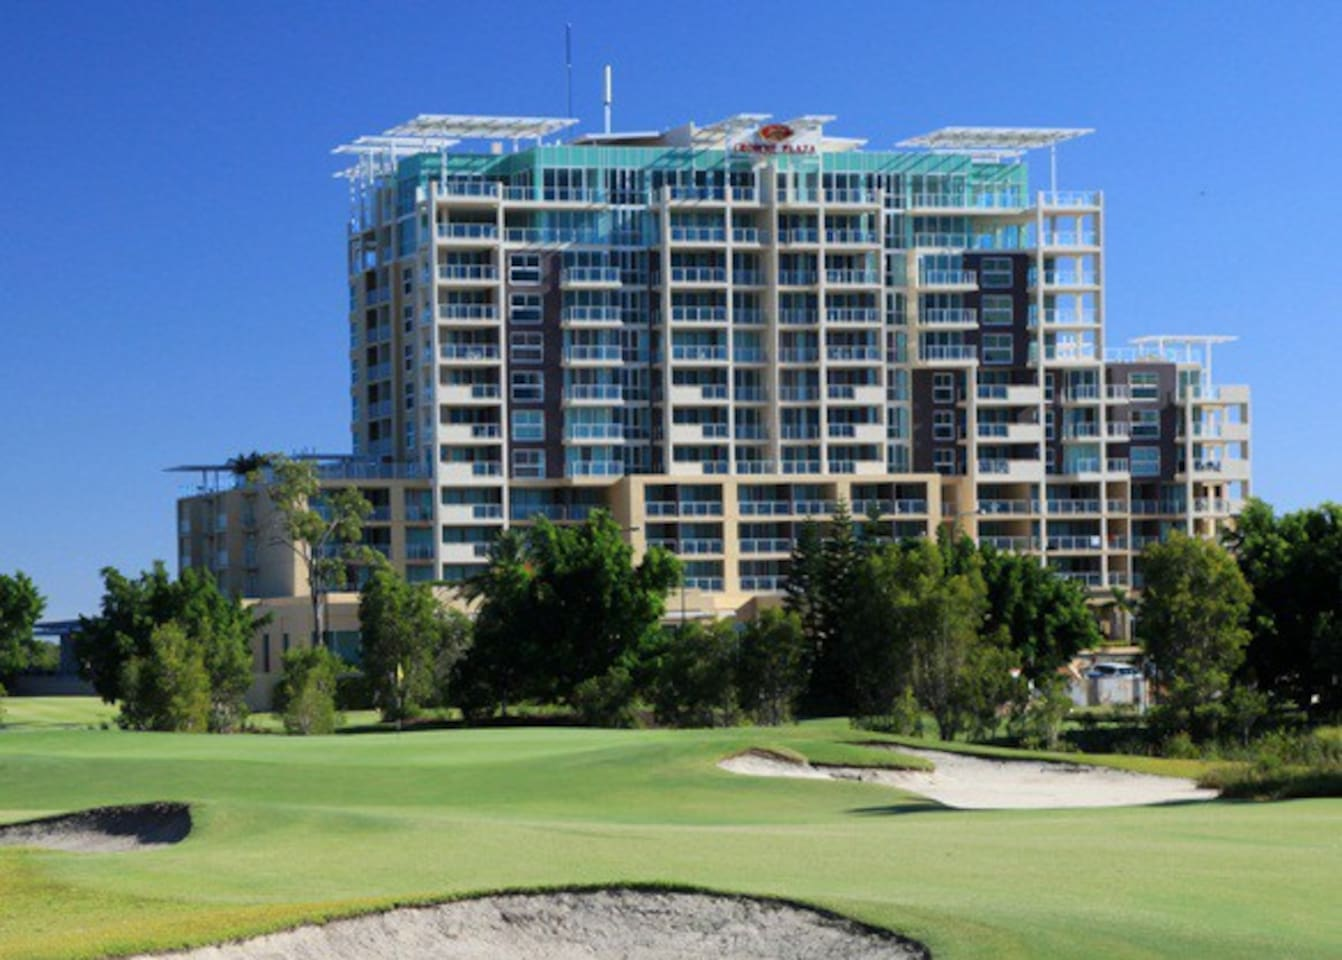 Pelican Waters Resort is home to one of Australia's premier Golf courses, designed by sporting legend Greg Norman